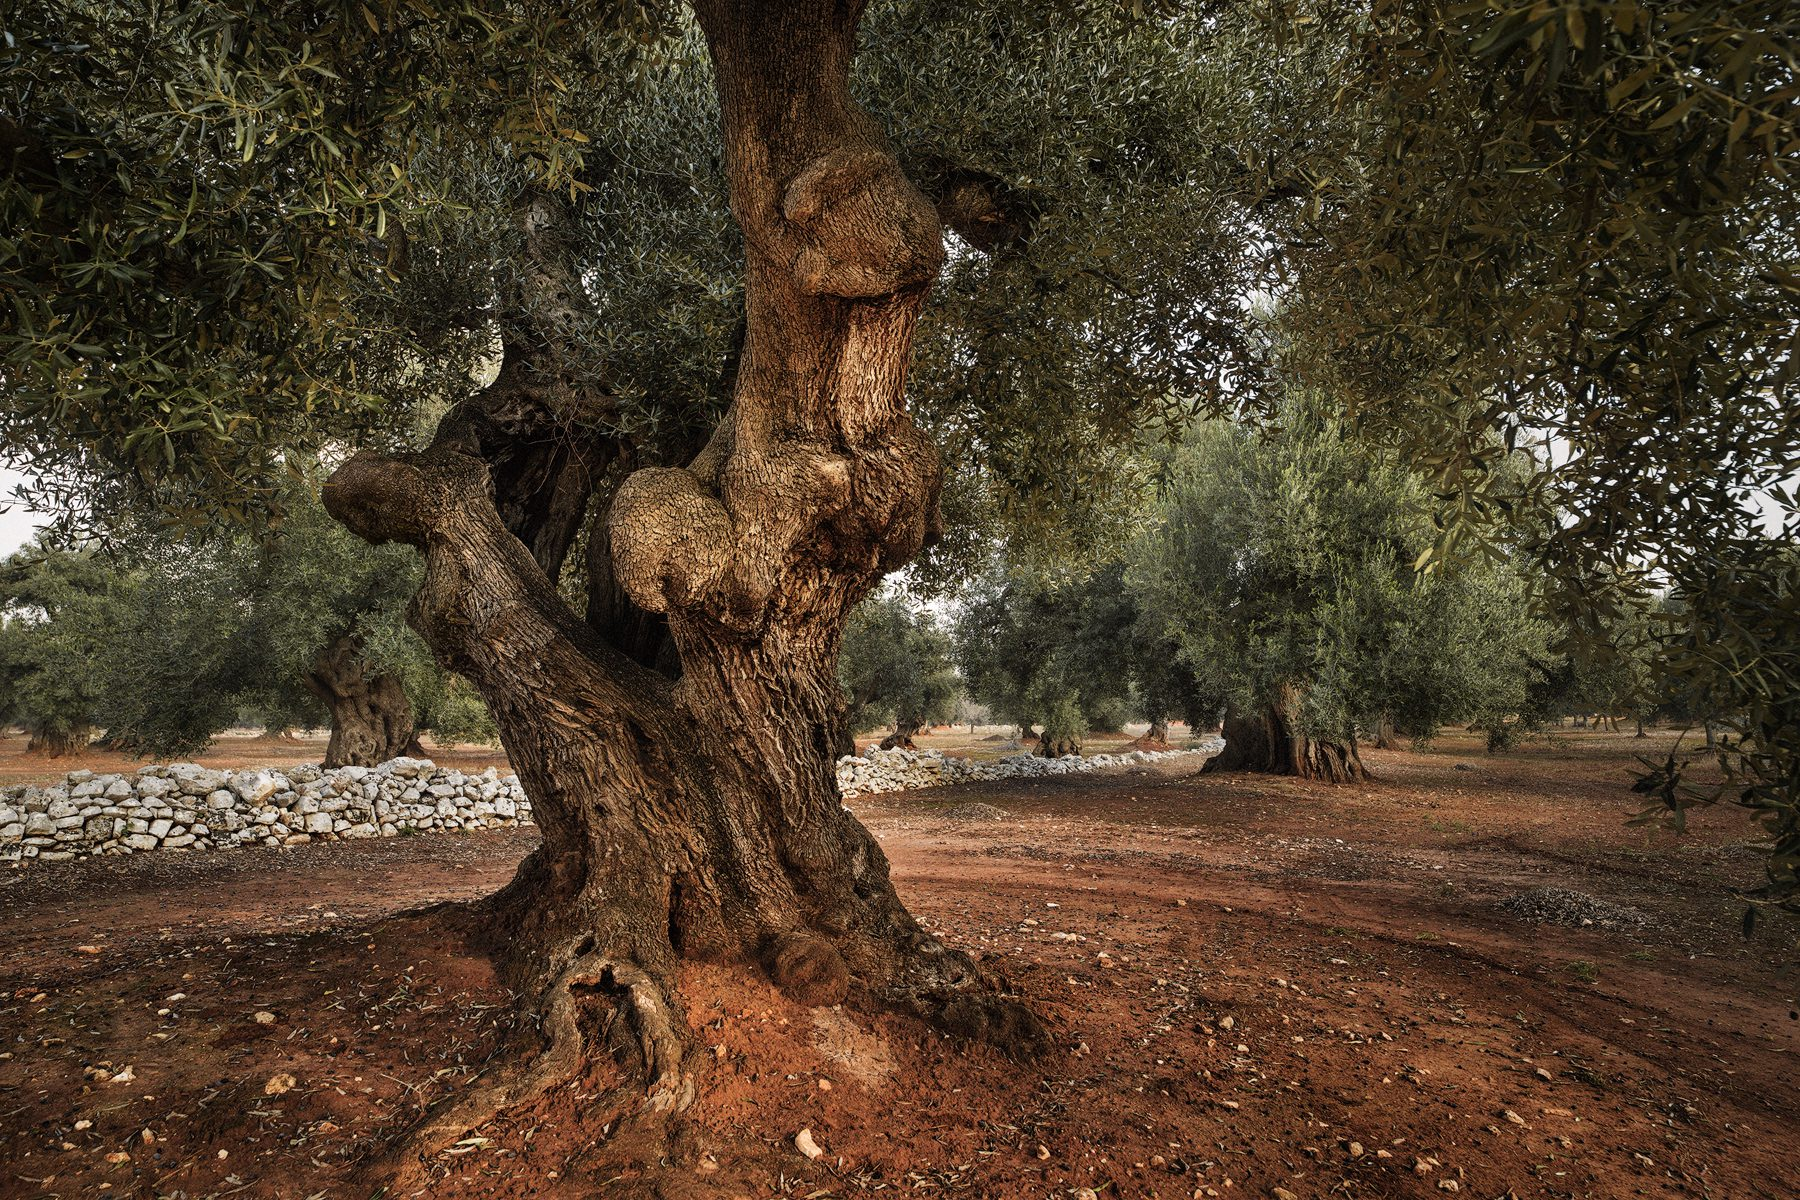 Italy, Ostuni - the place where the old olive trees are. A 1000 year old olive tree - 1000 year old olive oil tradition © by Gerry Pacher